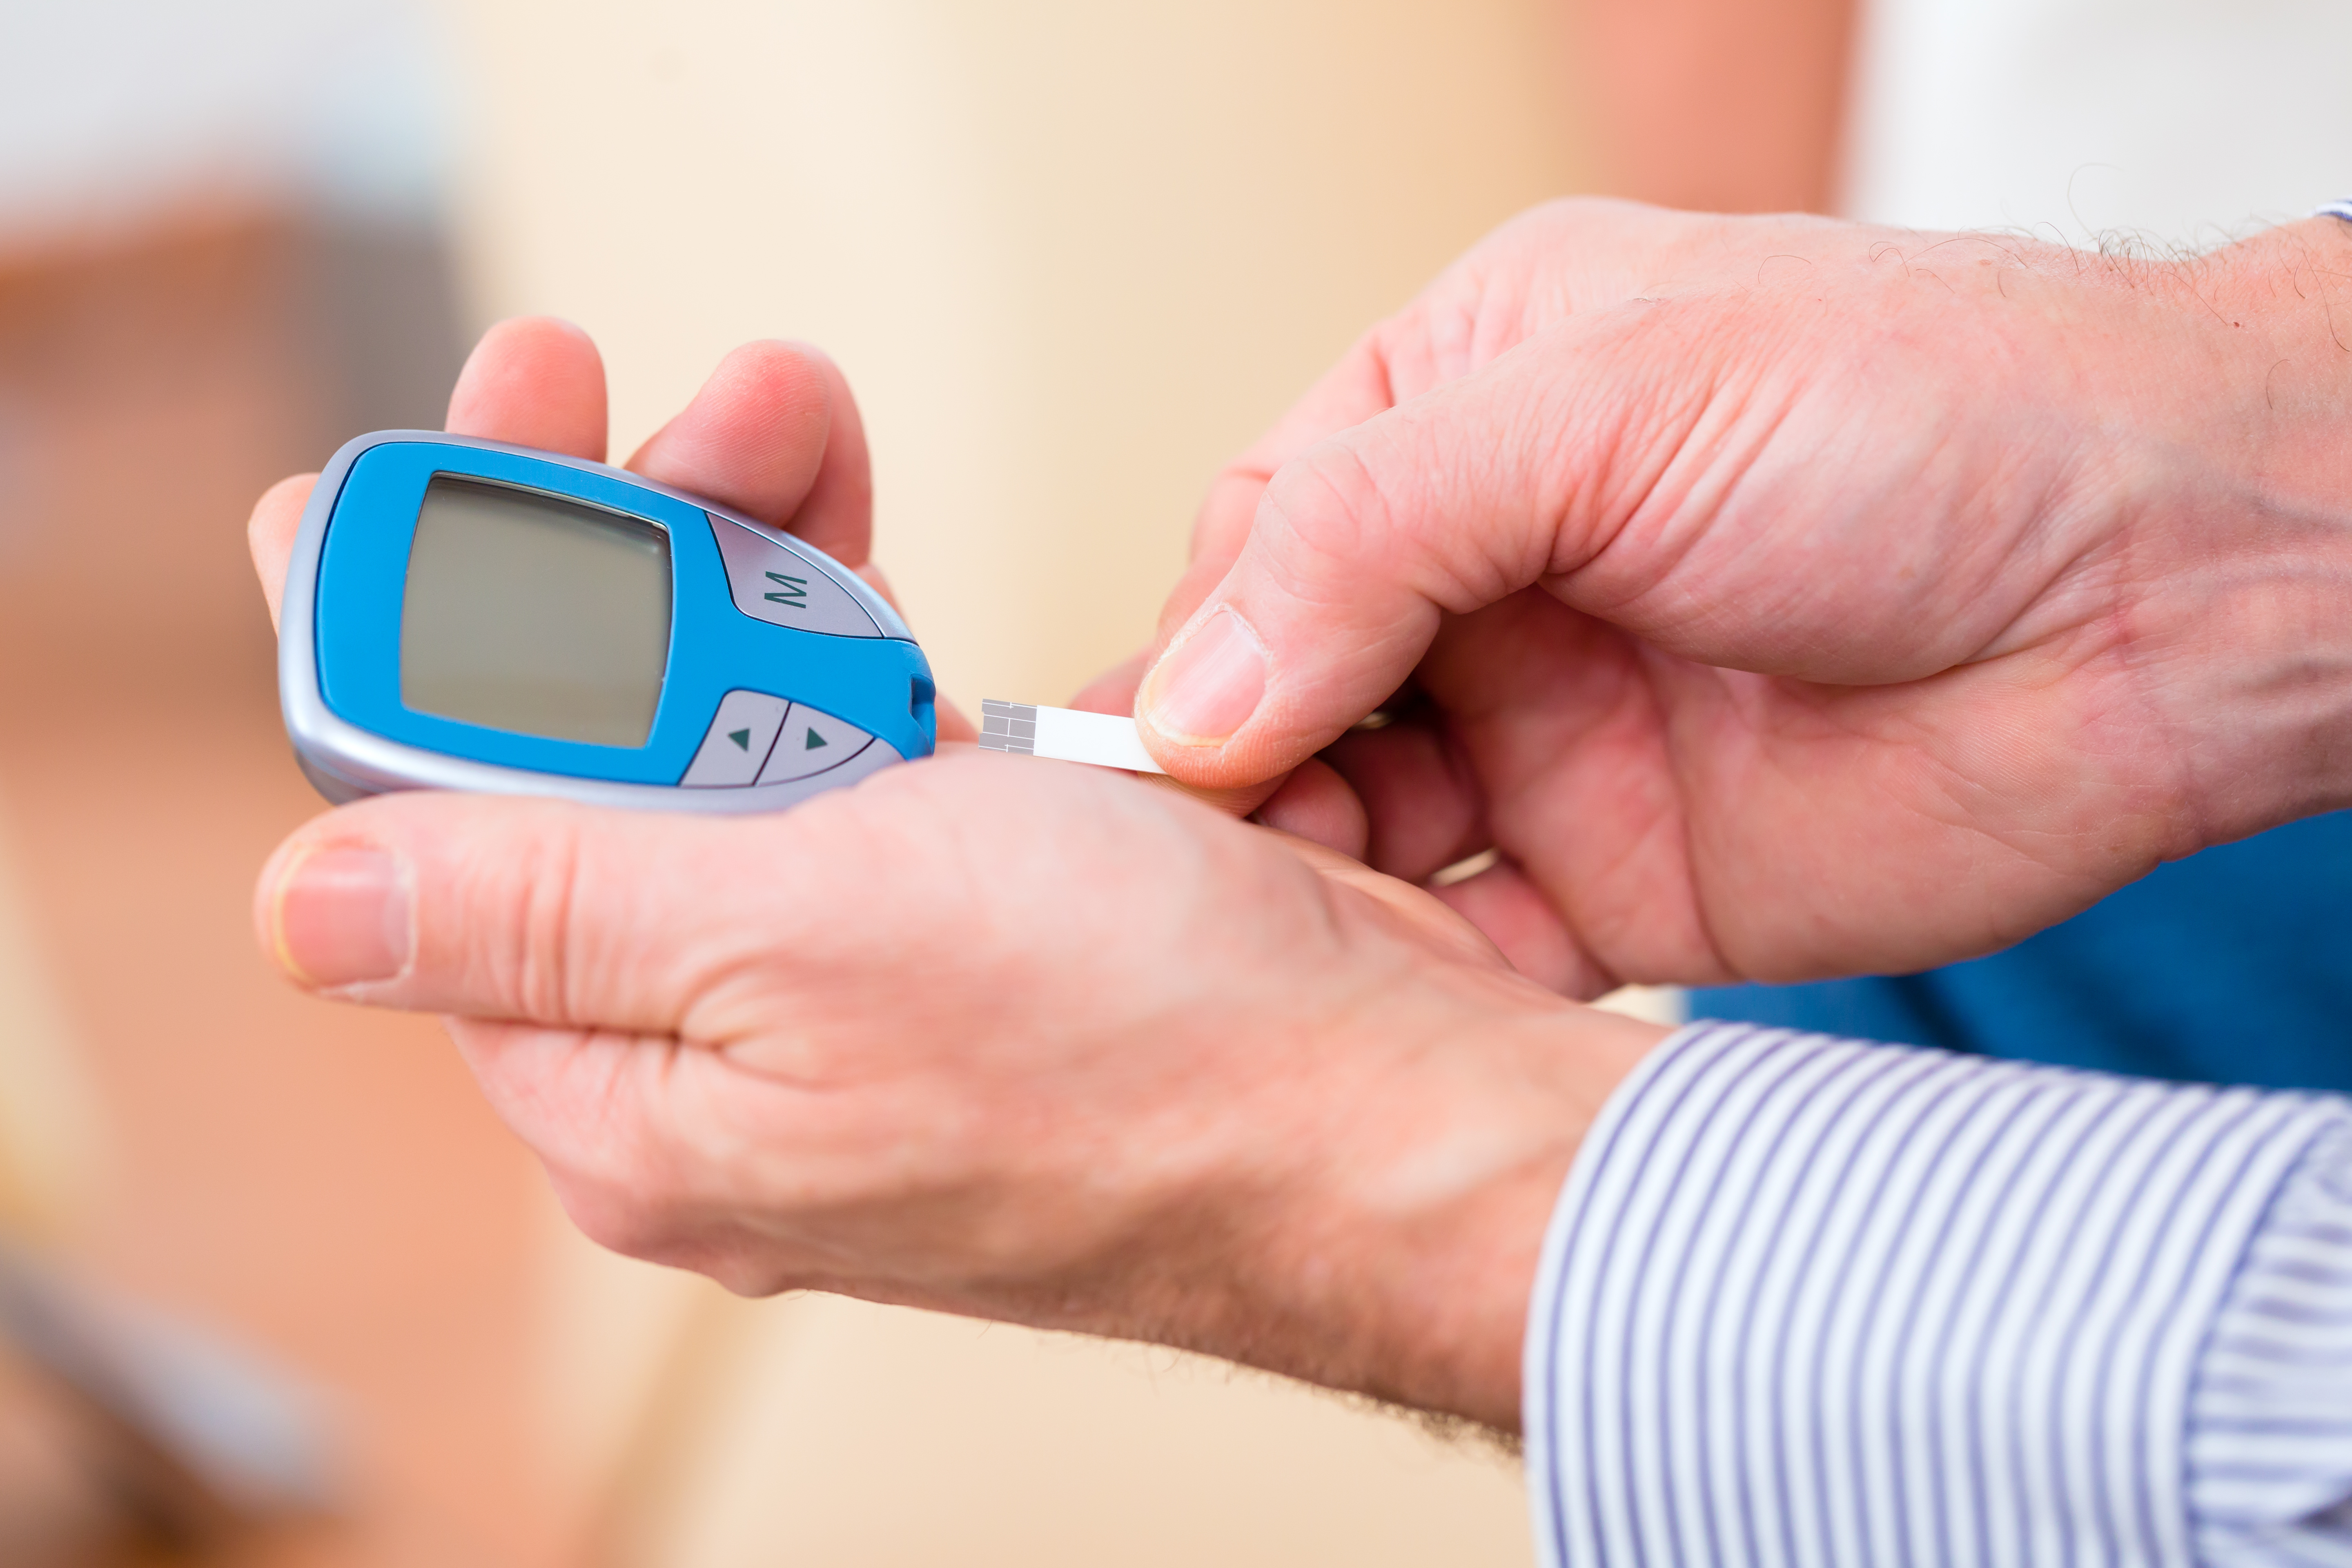 Man with adult onset diabetes measuring blood sugar with indicator